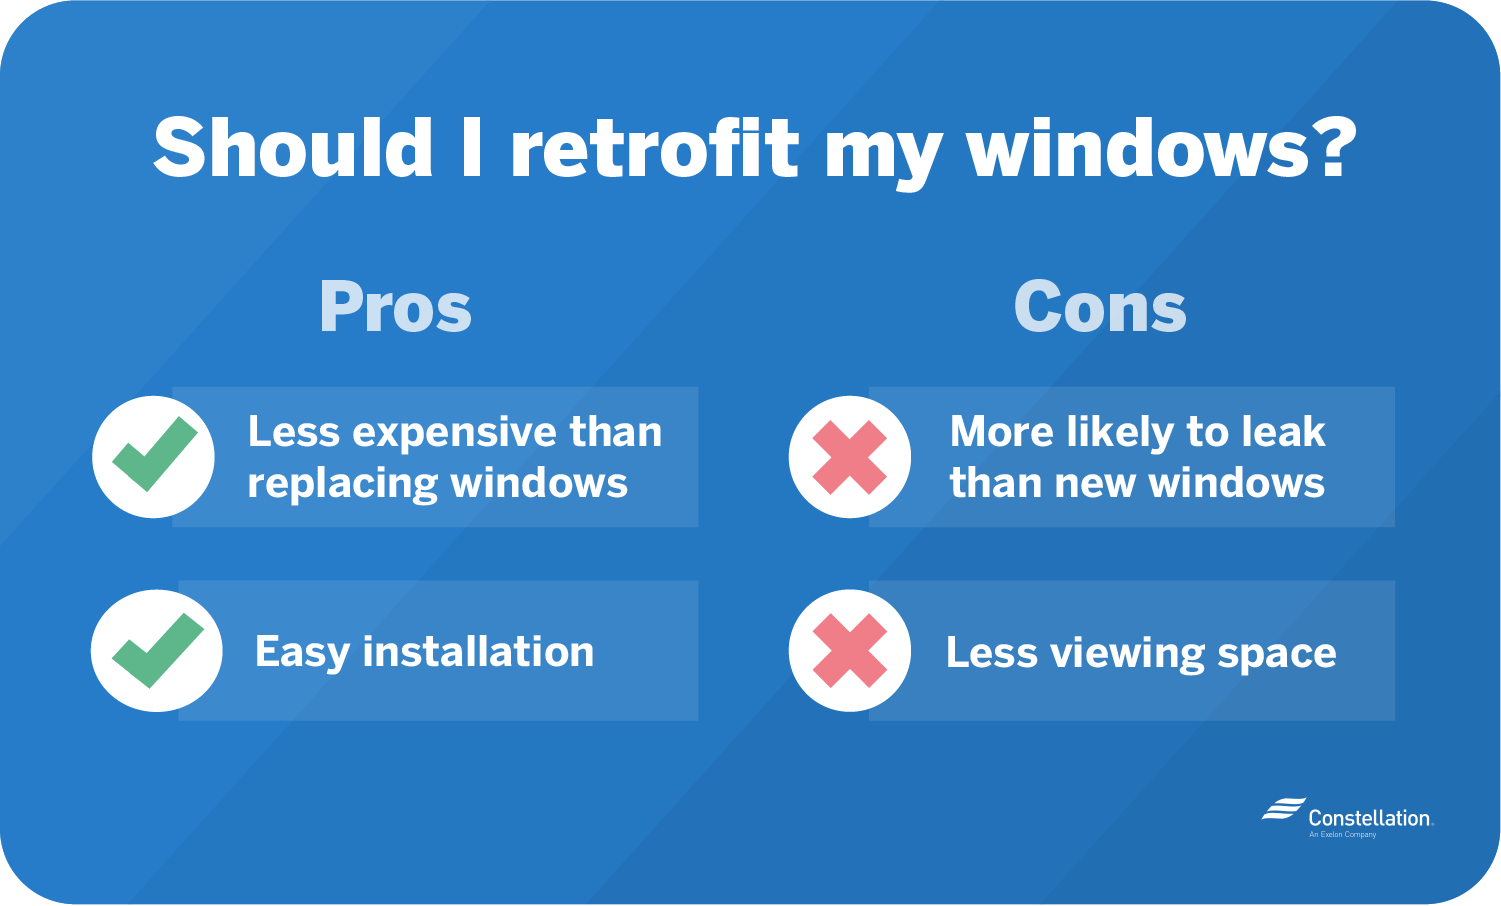 Pros of retrofitting windows include easy installation and lower expenses, and cons include less viewing space and increased risk of future leaks.